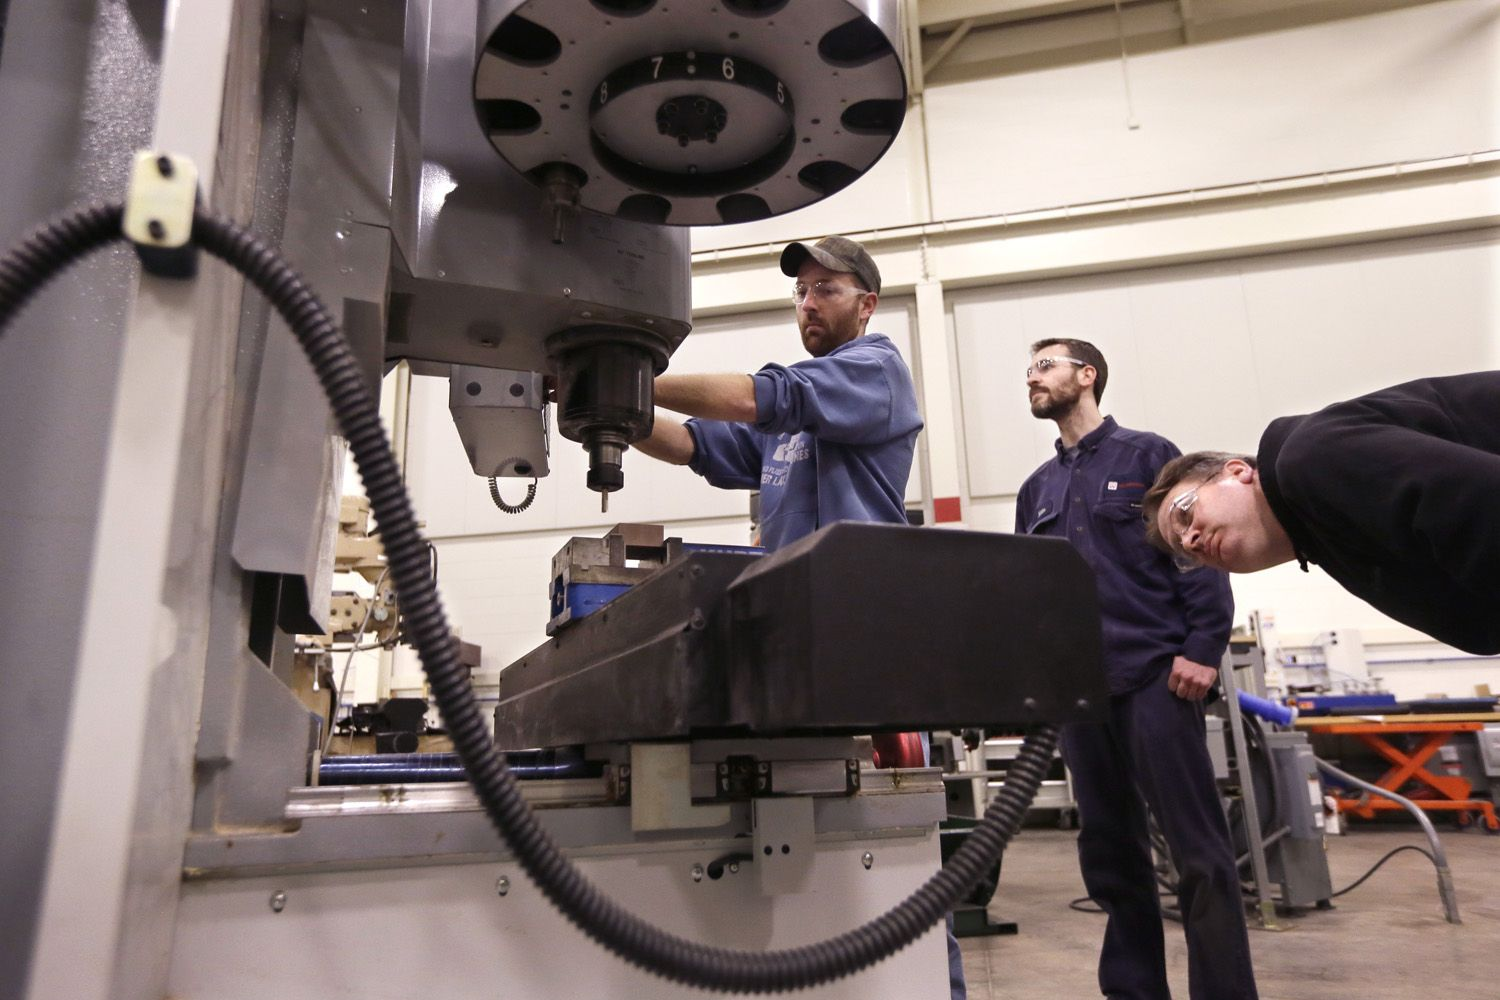 Vocational training is making a big comeback in American